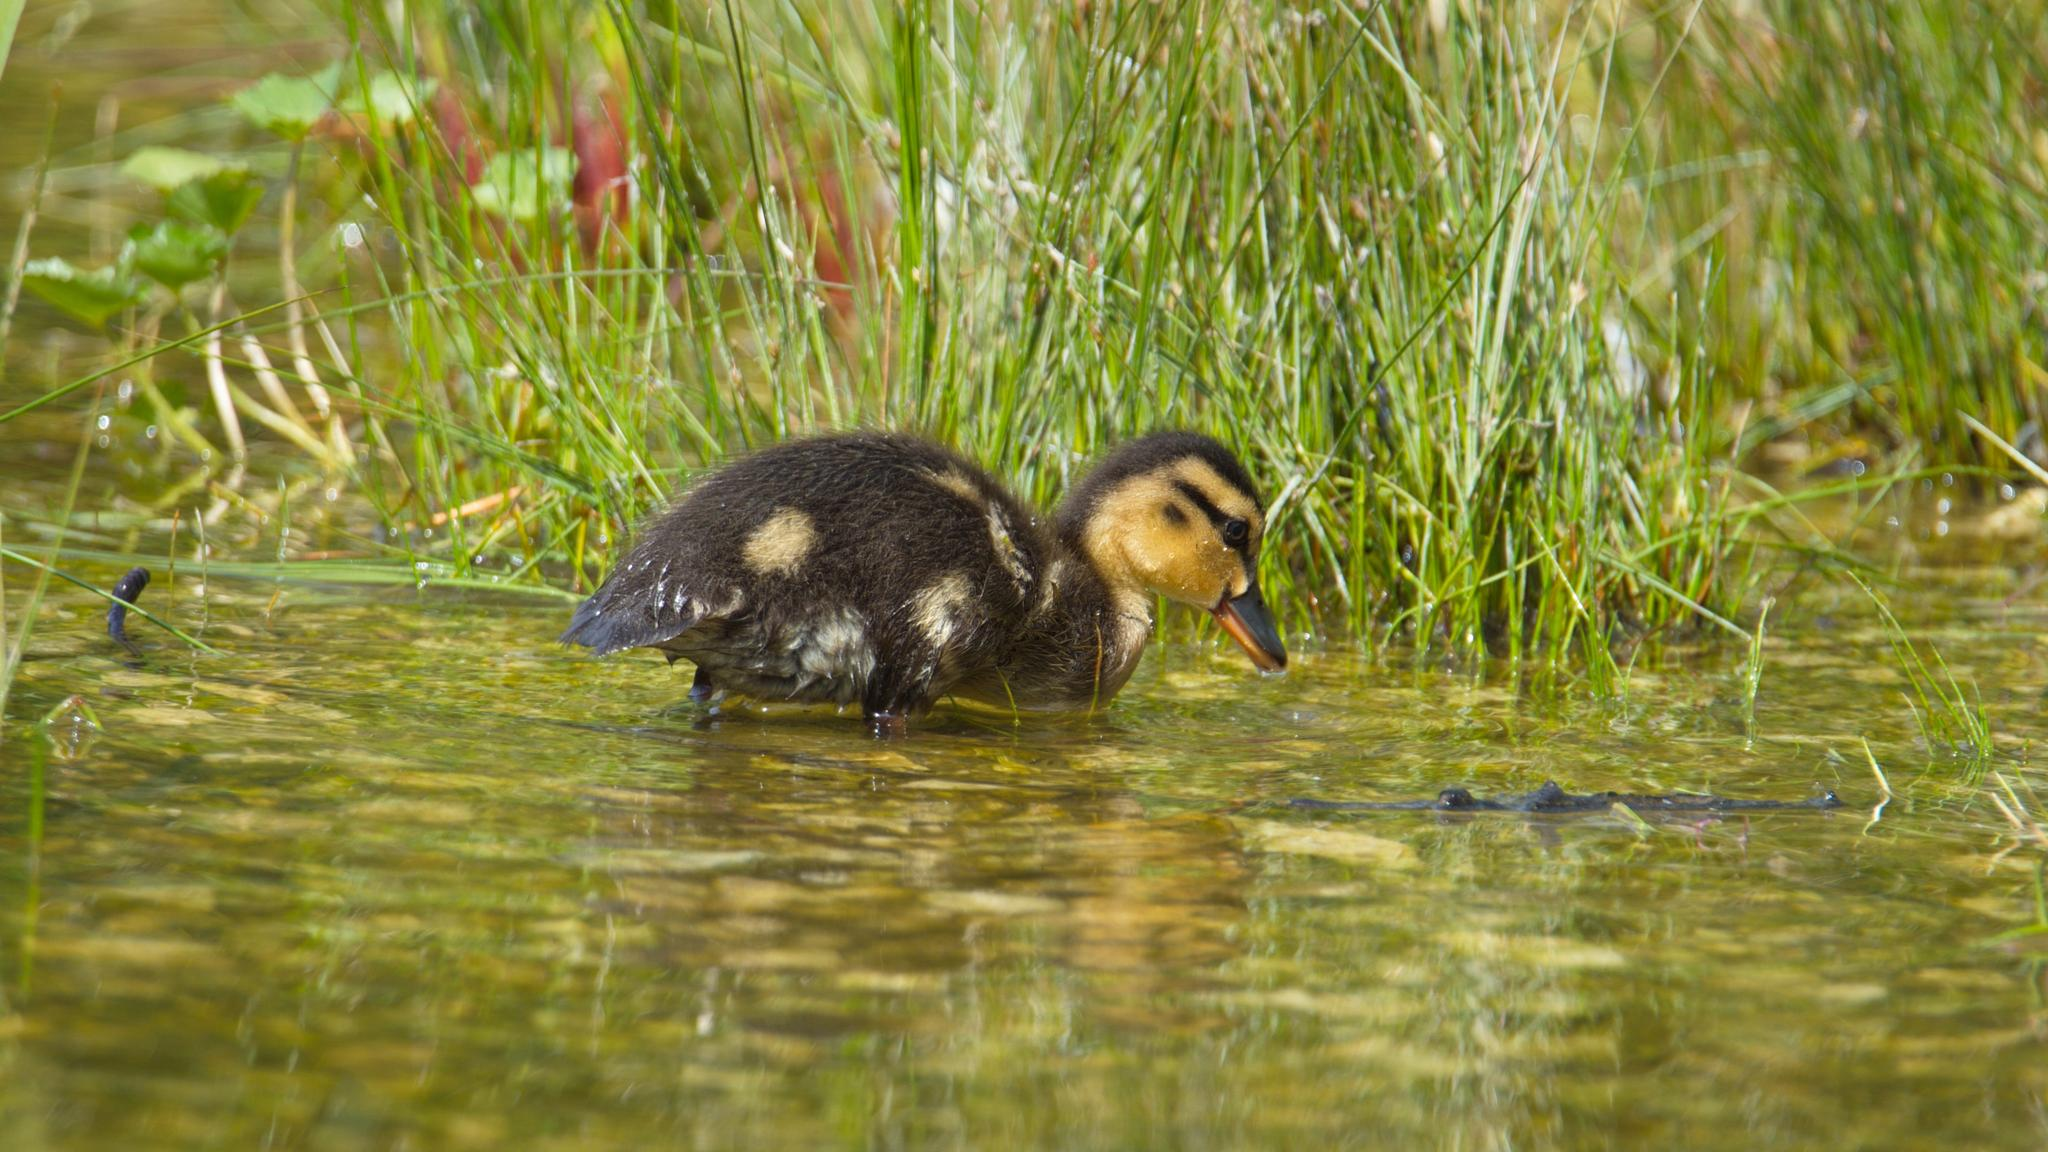 Duckling searching? by Stian Olaisen